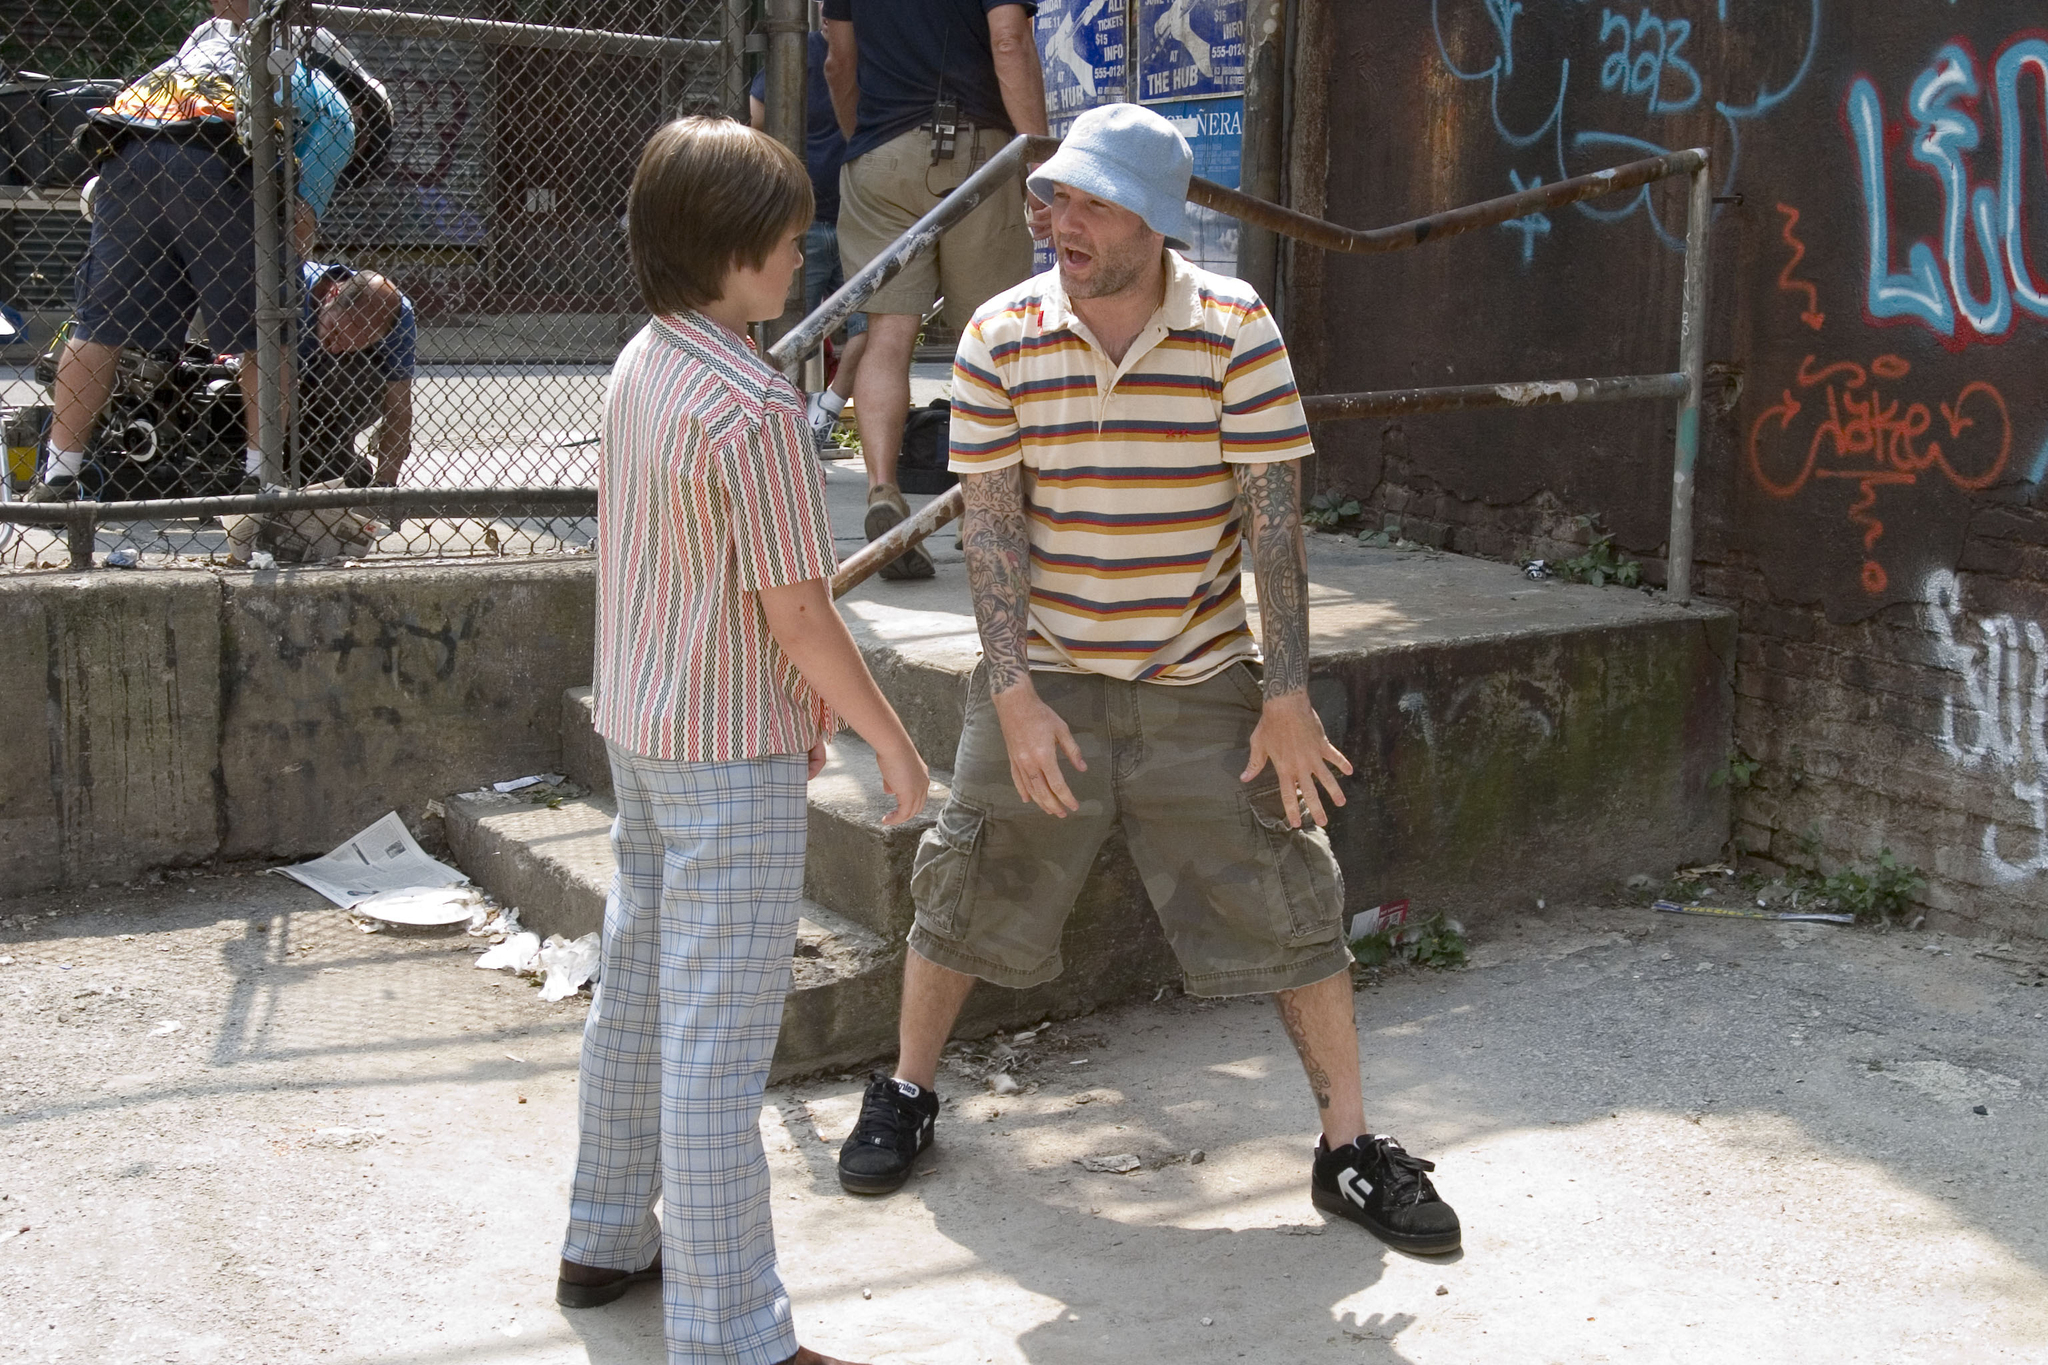 Fred Durst and Miles Chandler in The Education of Charlie Banks (2007)